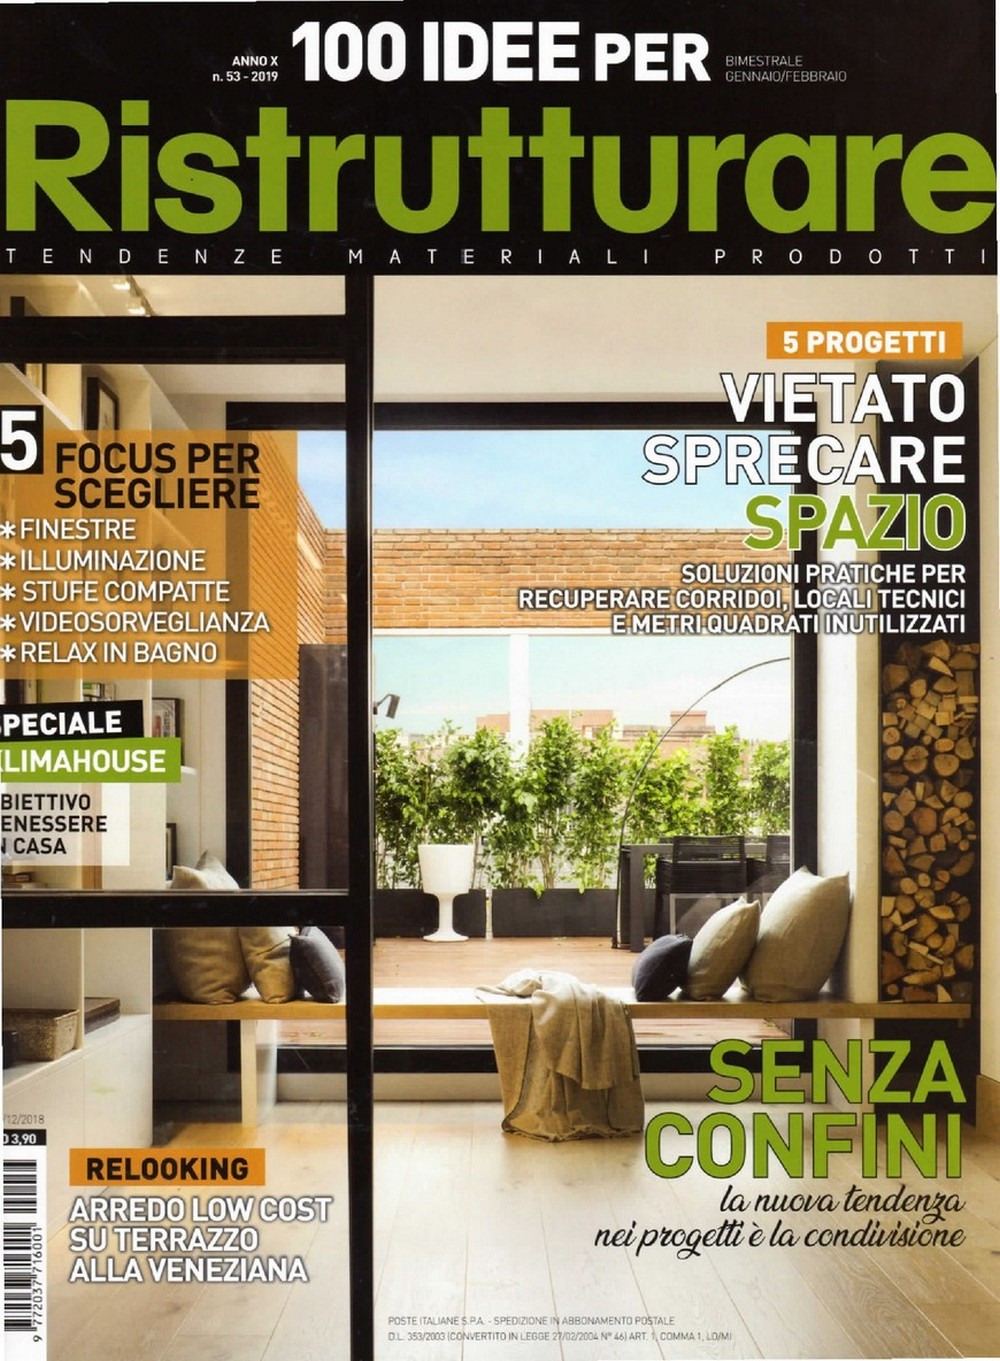 Design Your Home With The Best Interior Design Magazines At Cersaie cersaie Design Your Home With The Best Interior Design Magazines At Cersaie Design Your Home With The Best Interior Design Magazines At Cersaie 8